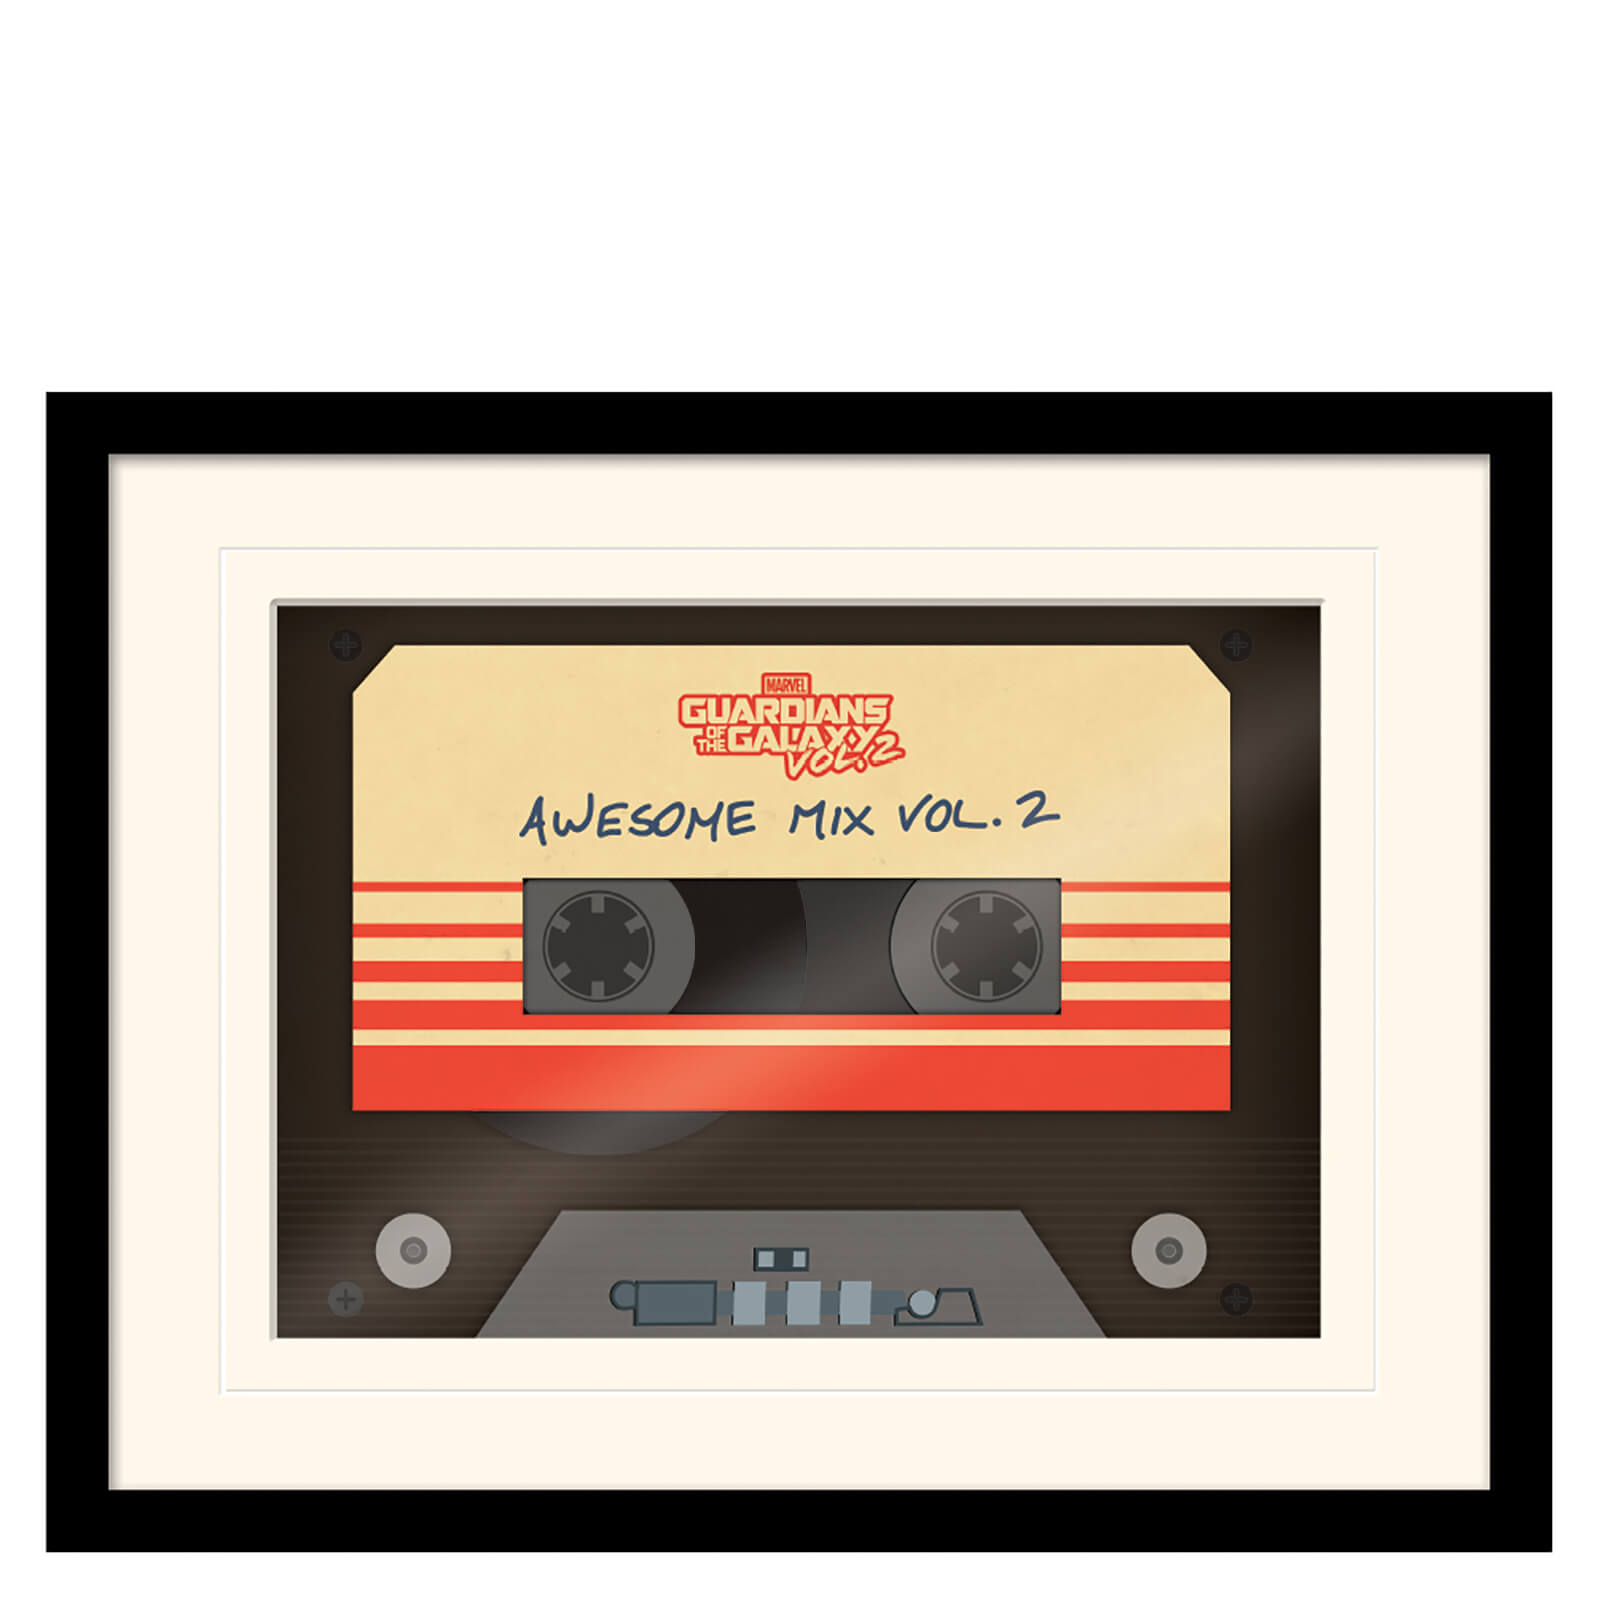 Guardians of the Galaxy Vol. 2 (Awesome Mix Vol. 2) Mounted & Framed 30 x 40cm Print